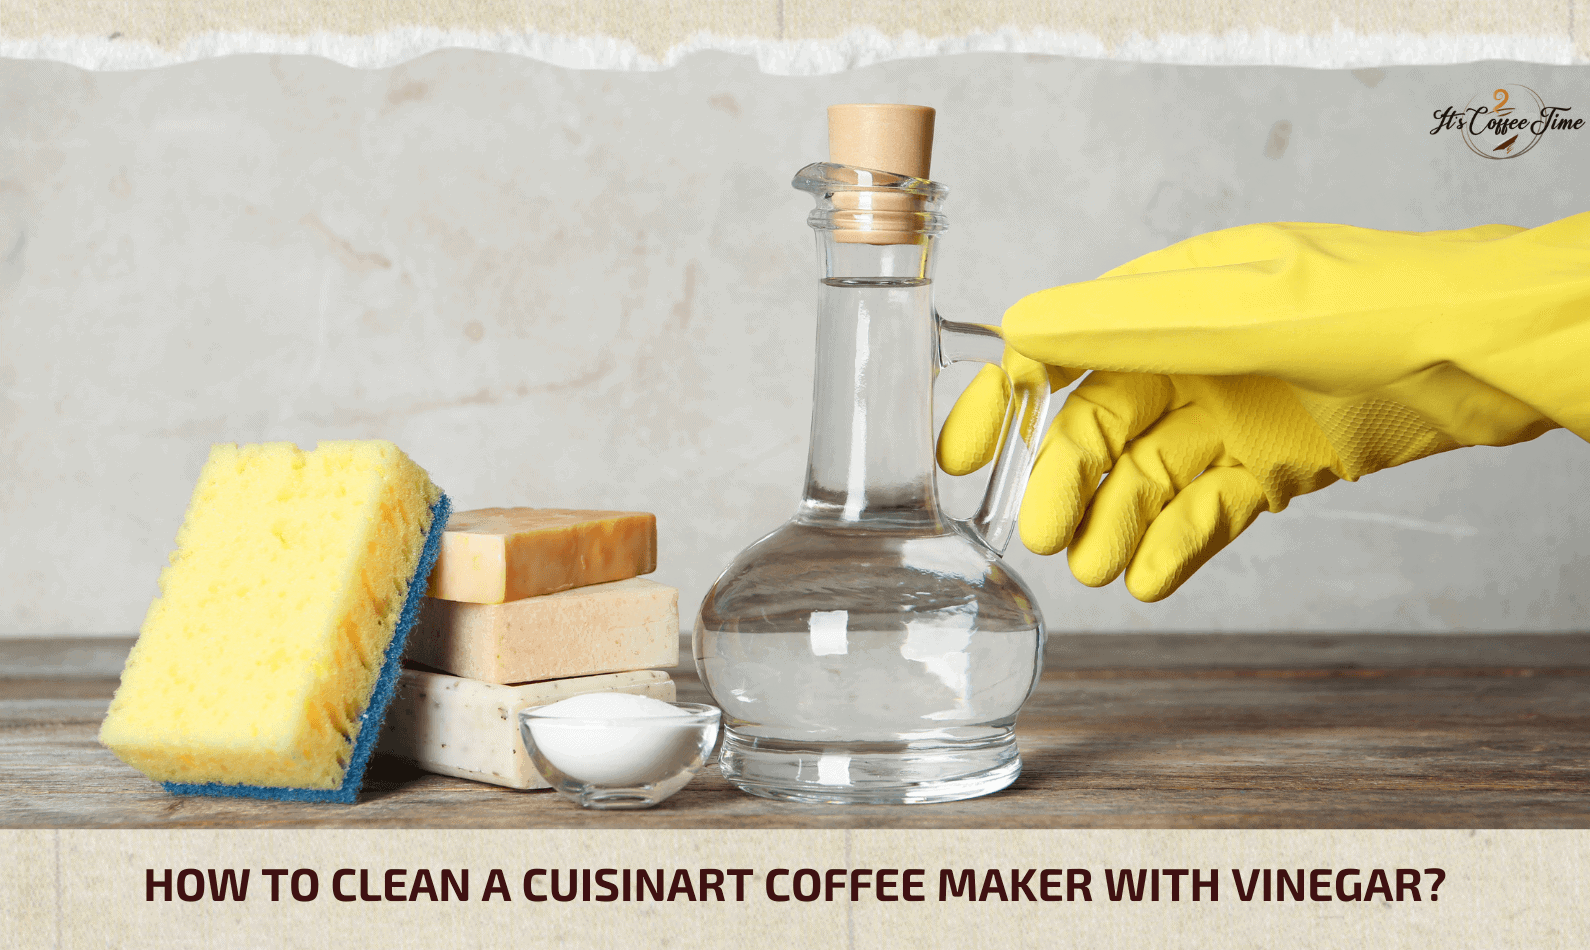 How to Clean a Cuisinart Coffee Maker with Vinegar